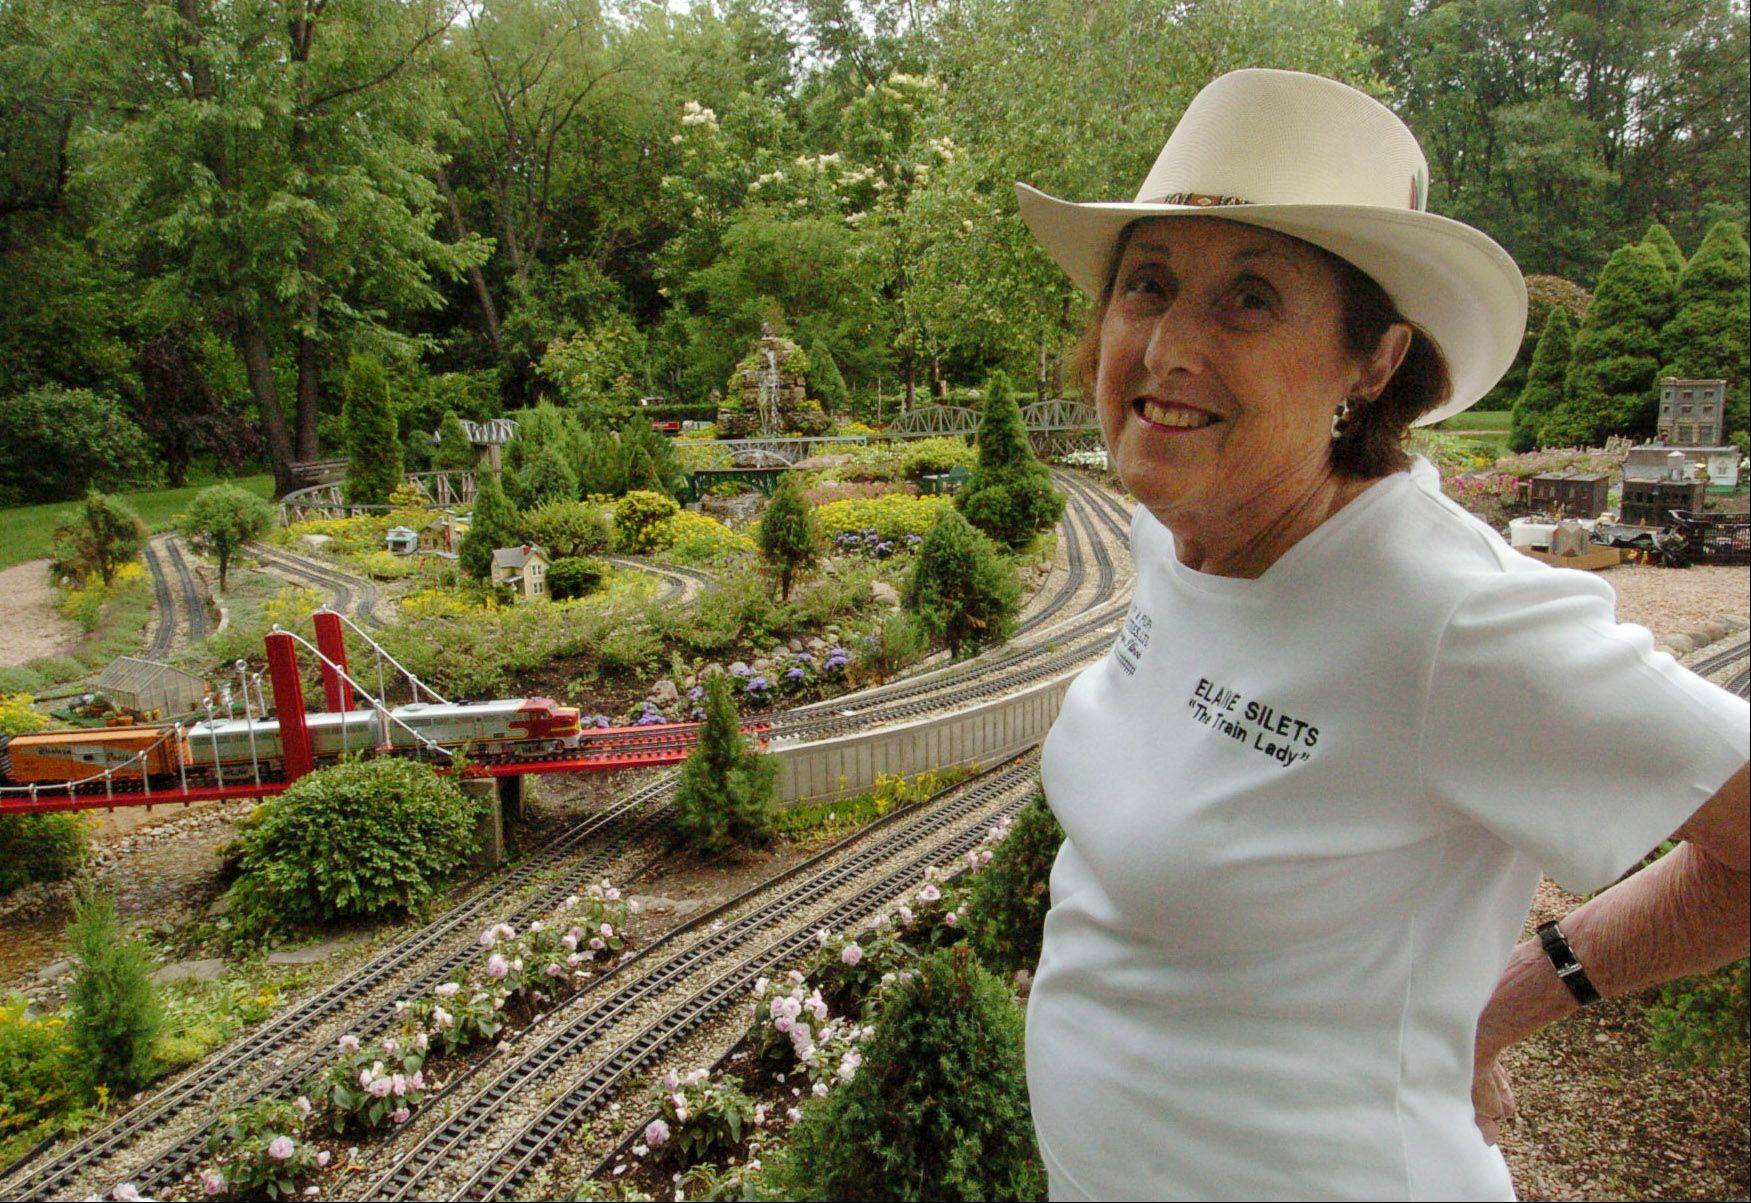 Elaine Silets and her garden railroad in North Barrington.